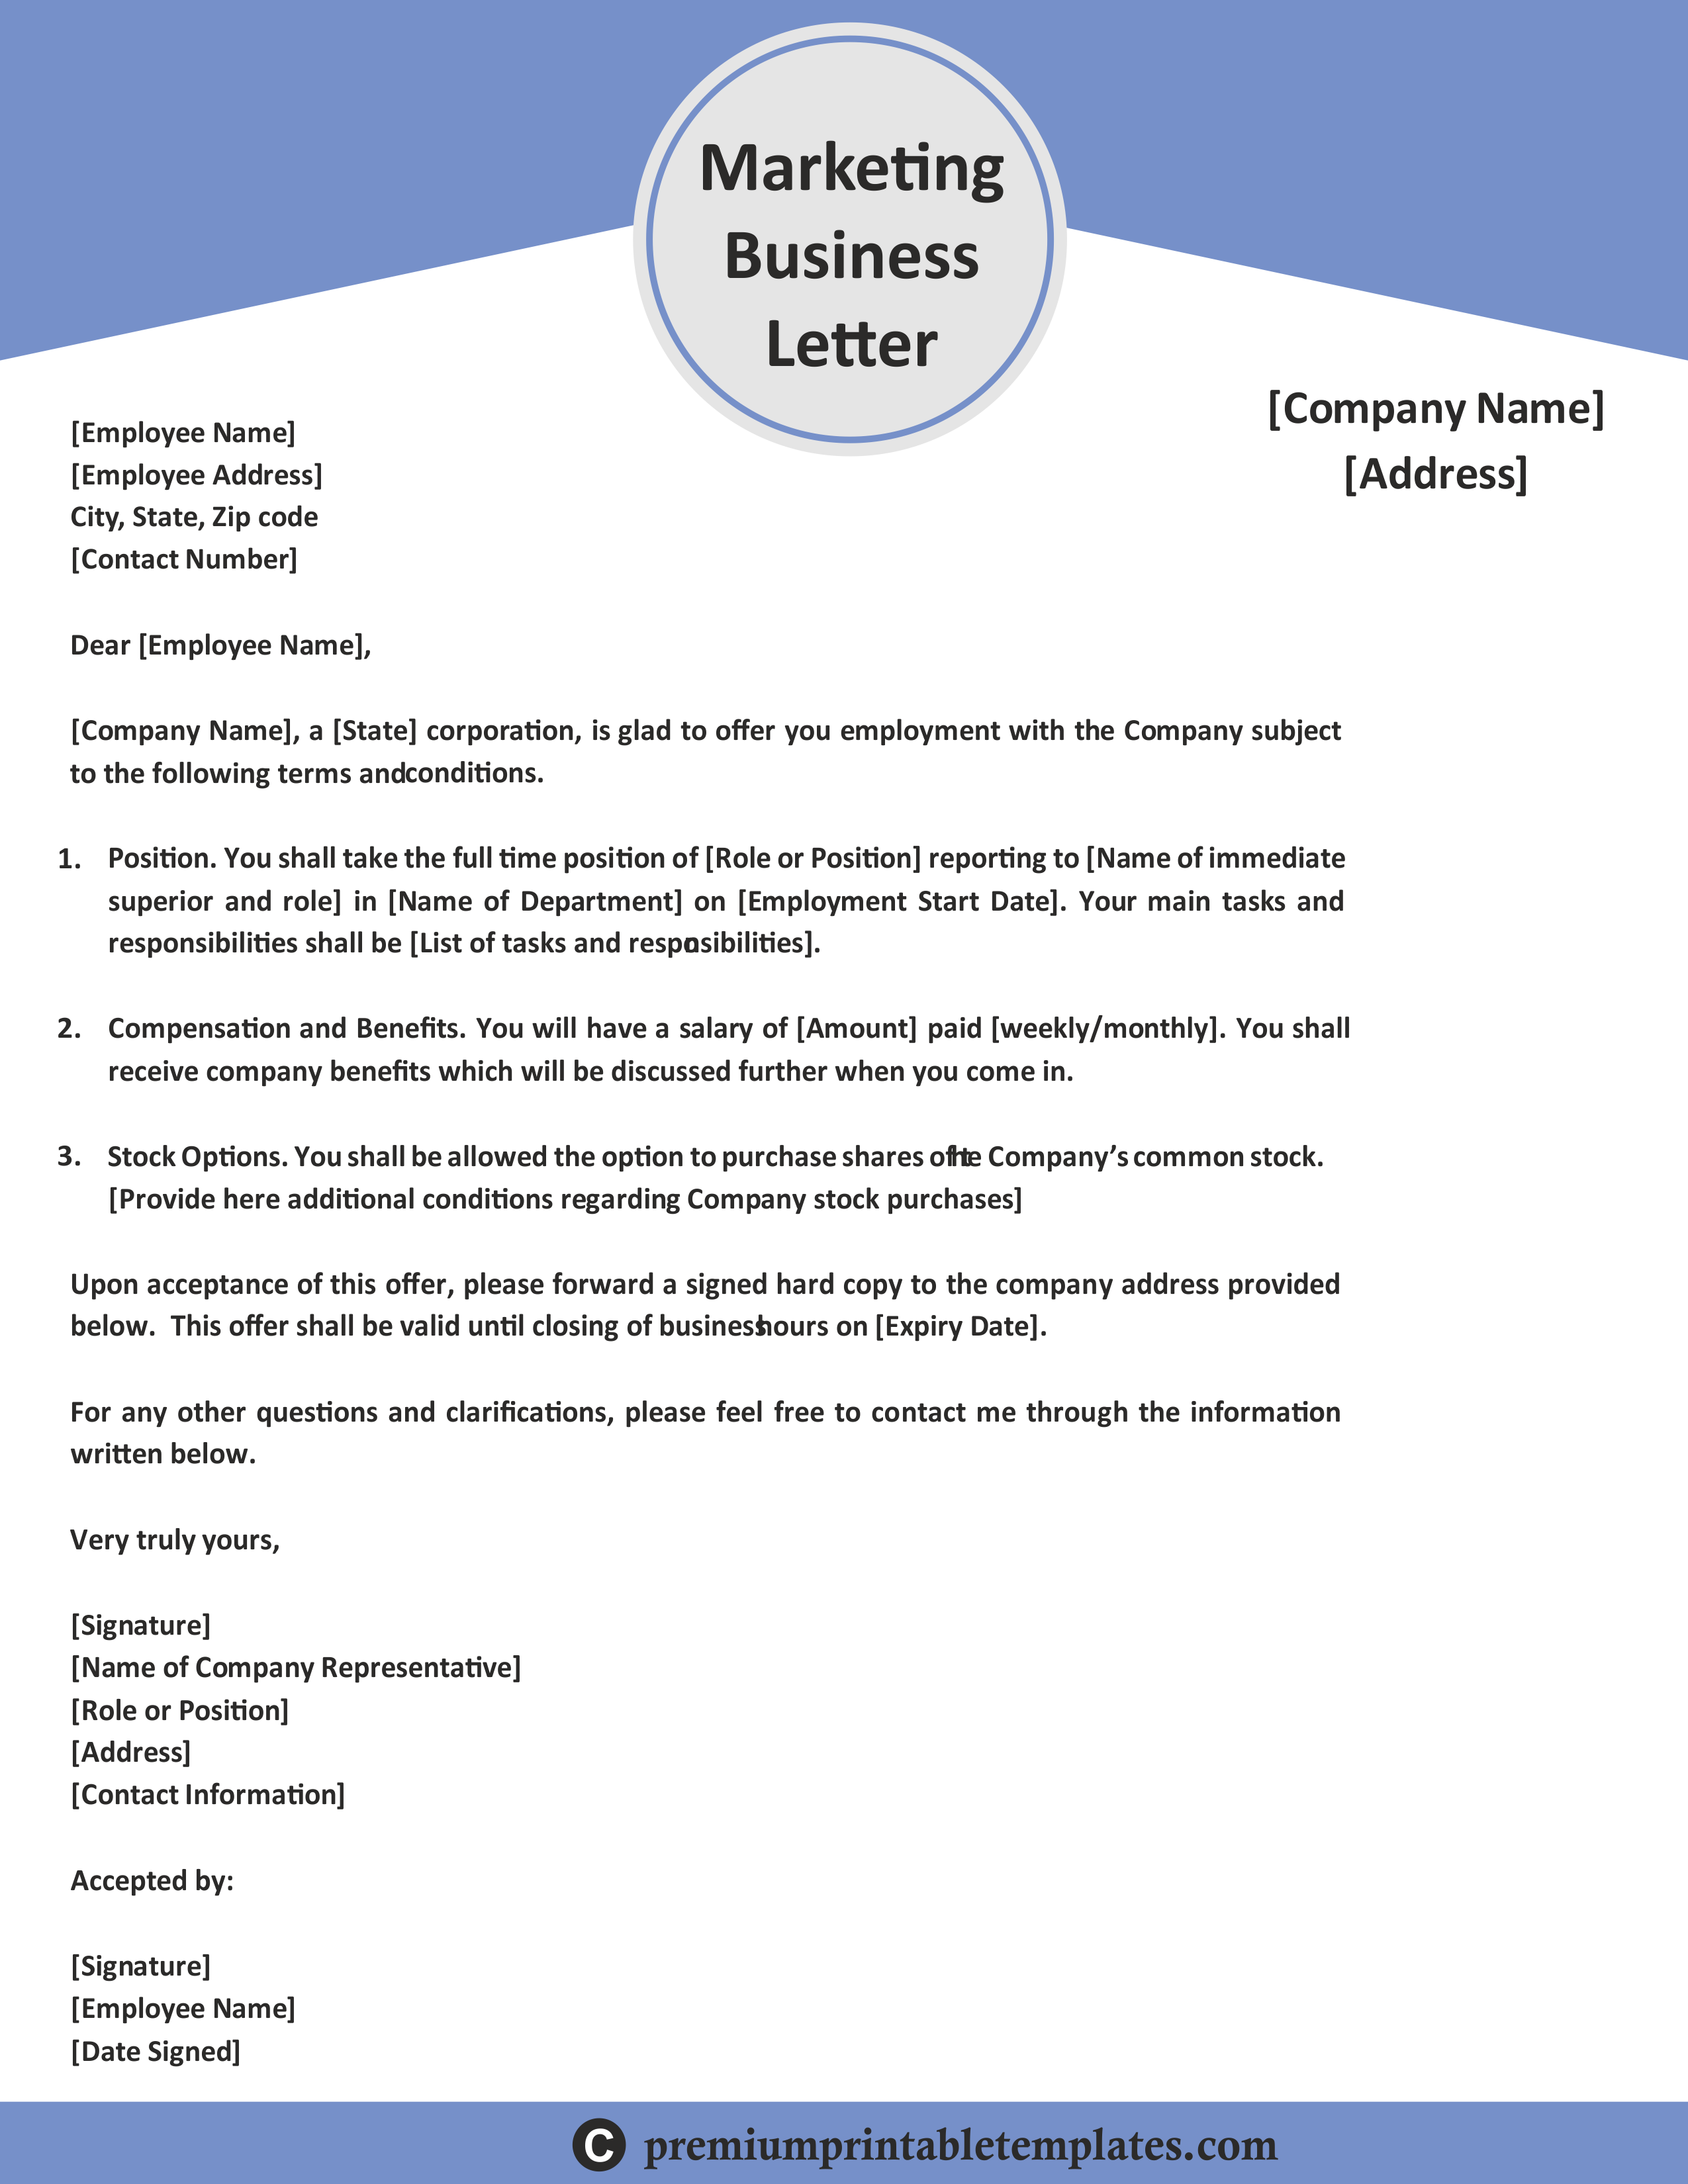 marketing business letter (with images) professional resume template free download general objective examples for experienced sample volunteer board position